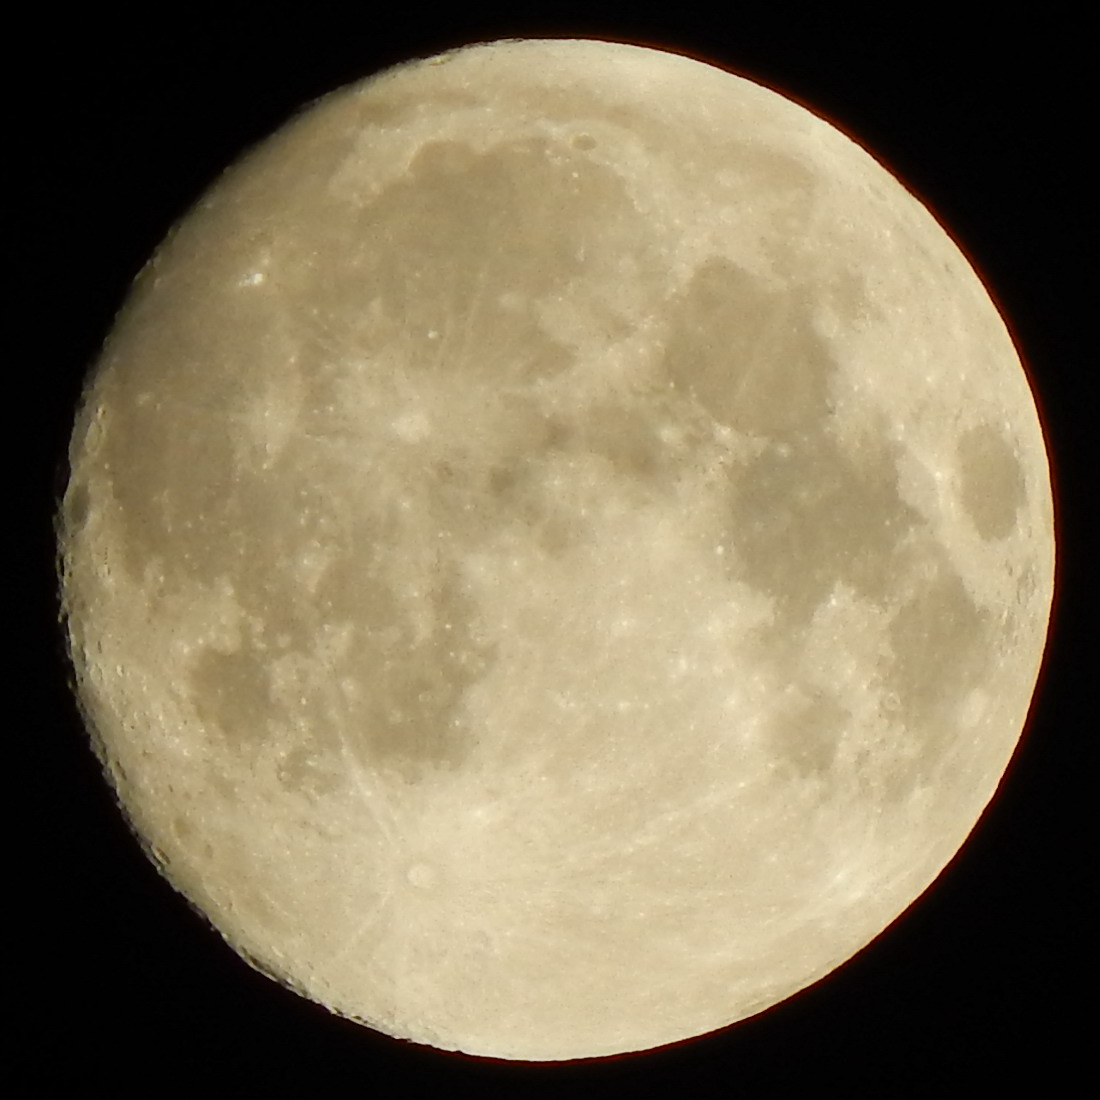 27-9-2015 23:27 - just before the blod moon.